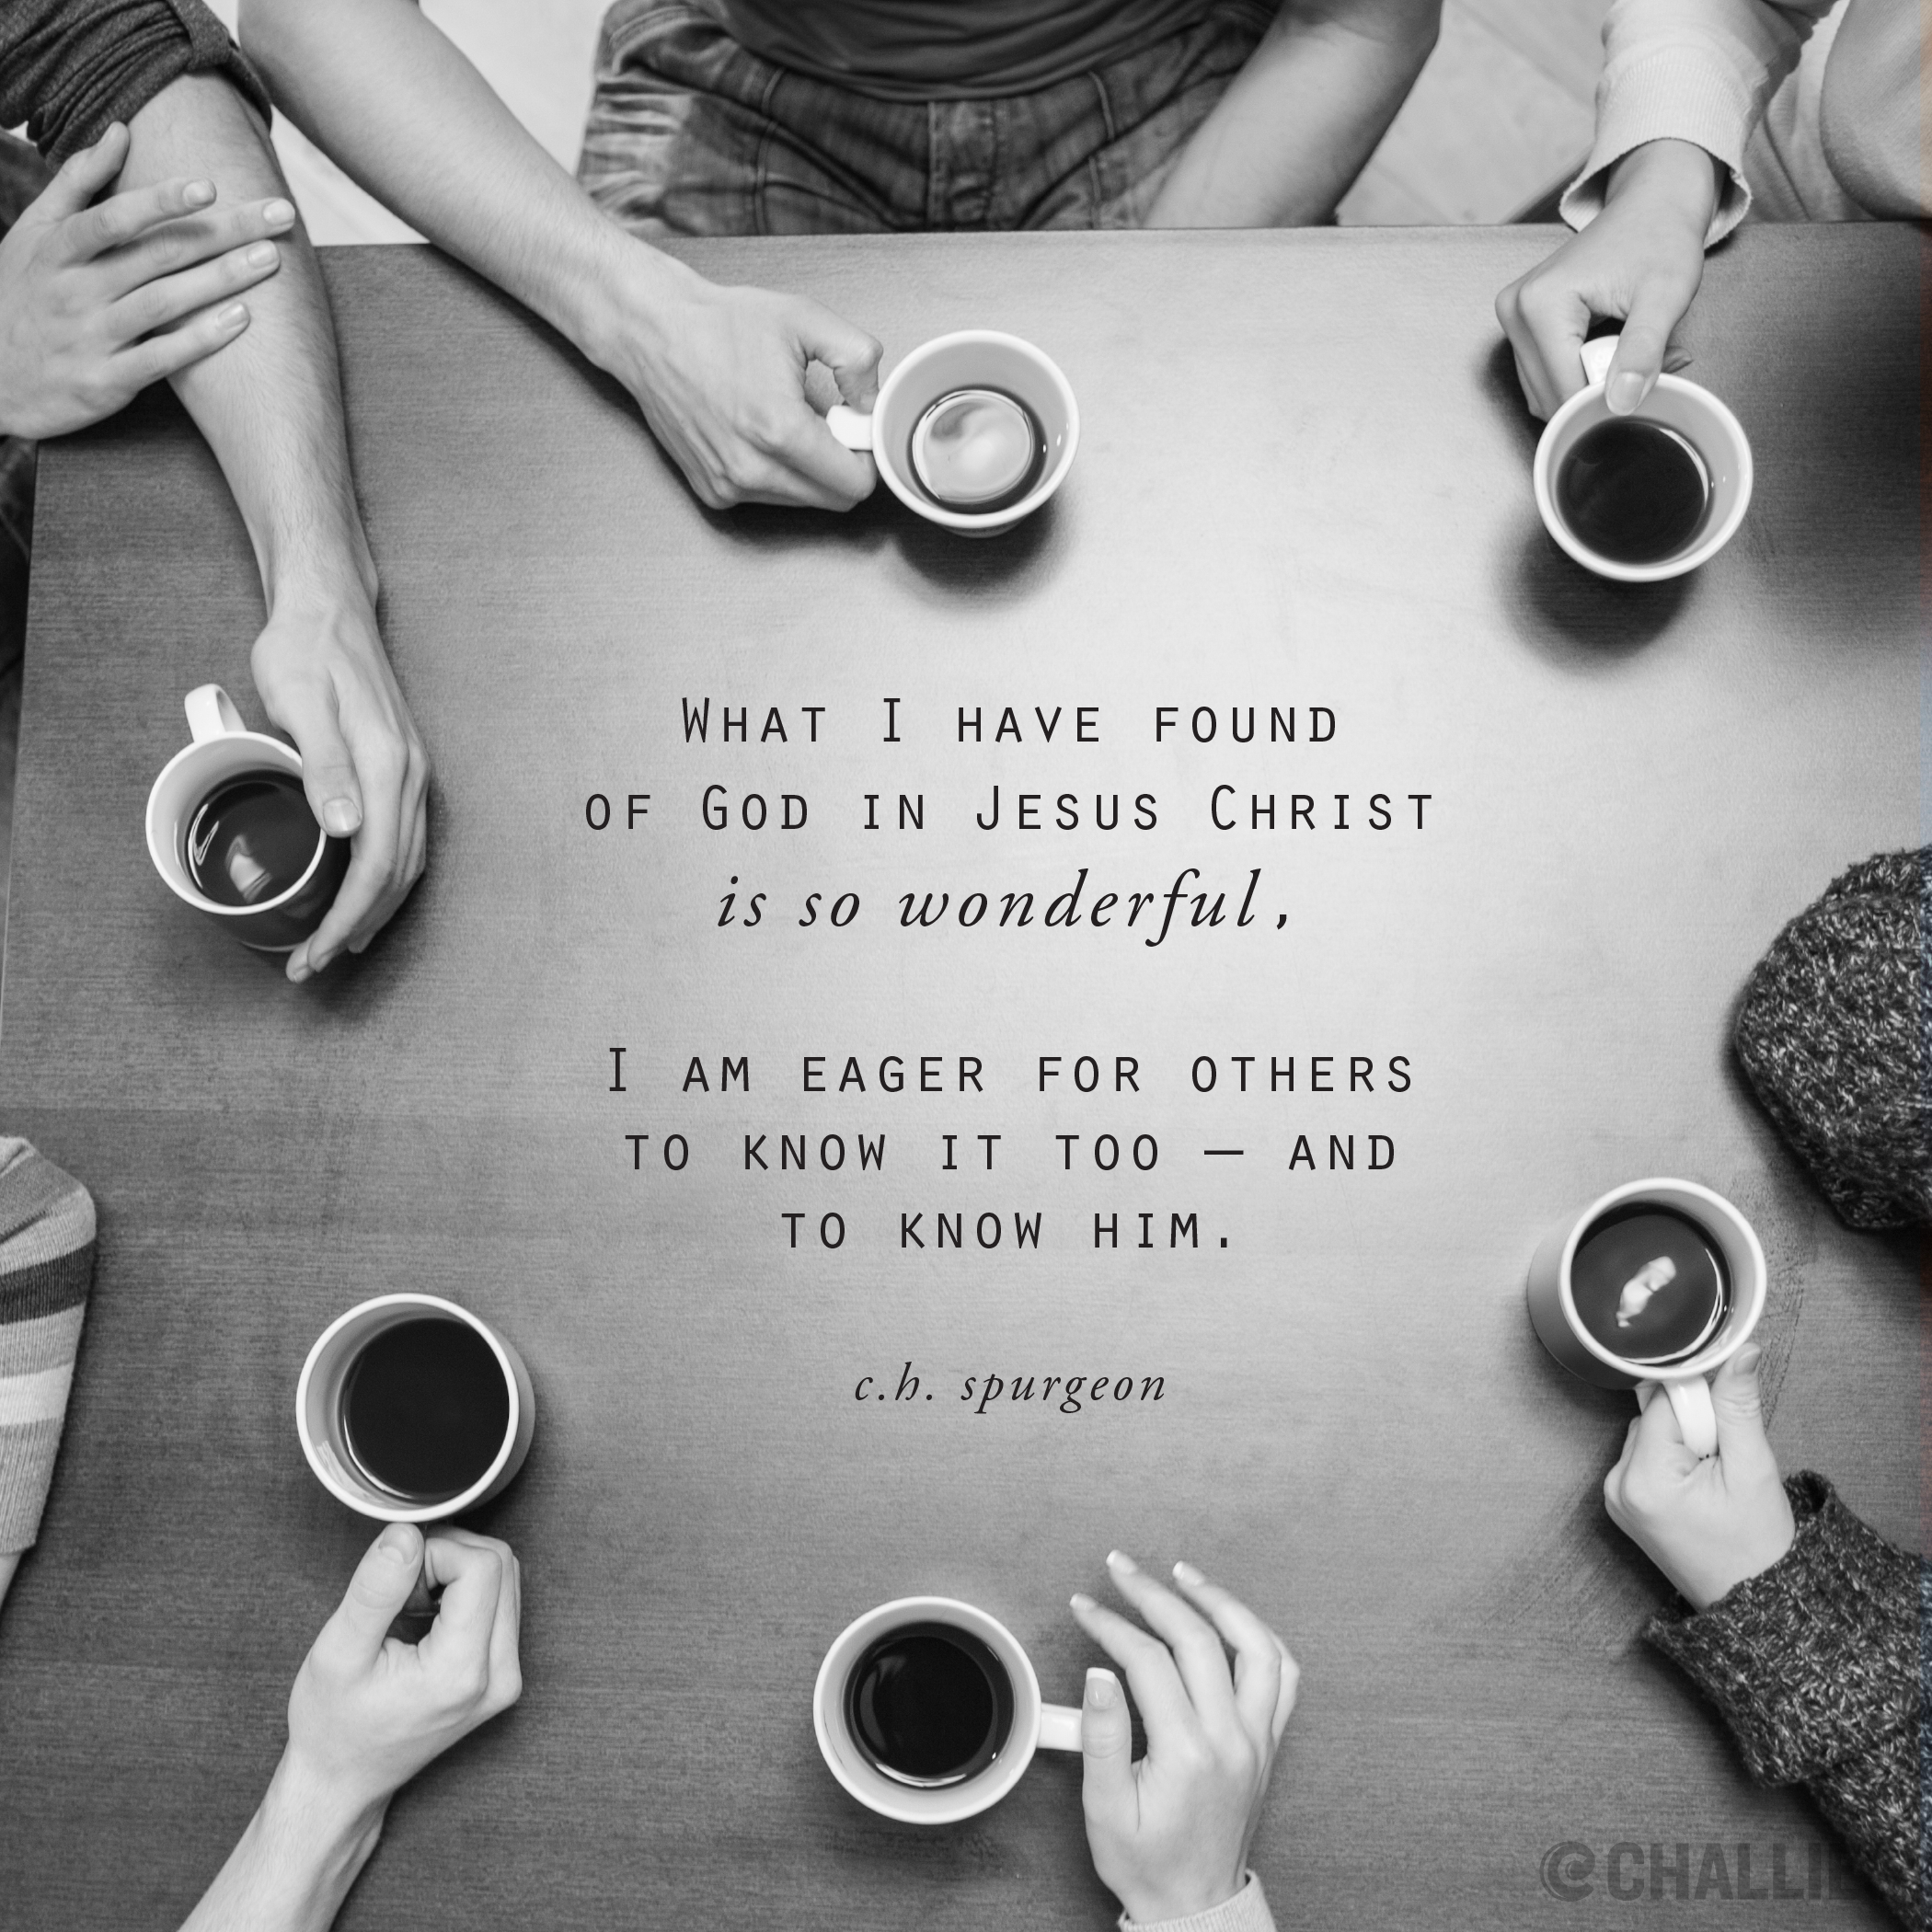 what i have found of god in jesus christ is so wonderful i am what i have found of god in jesus christ is so wonderful i am eager for others to know it too and to know him c h spurgeon